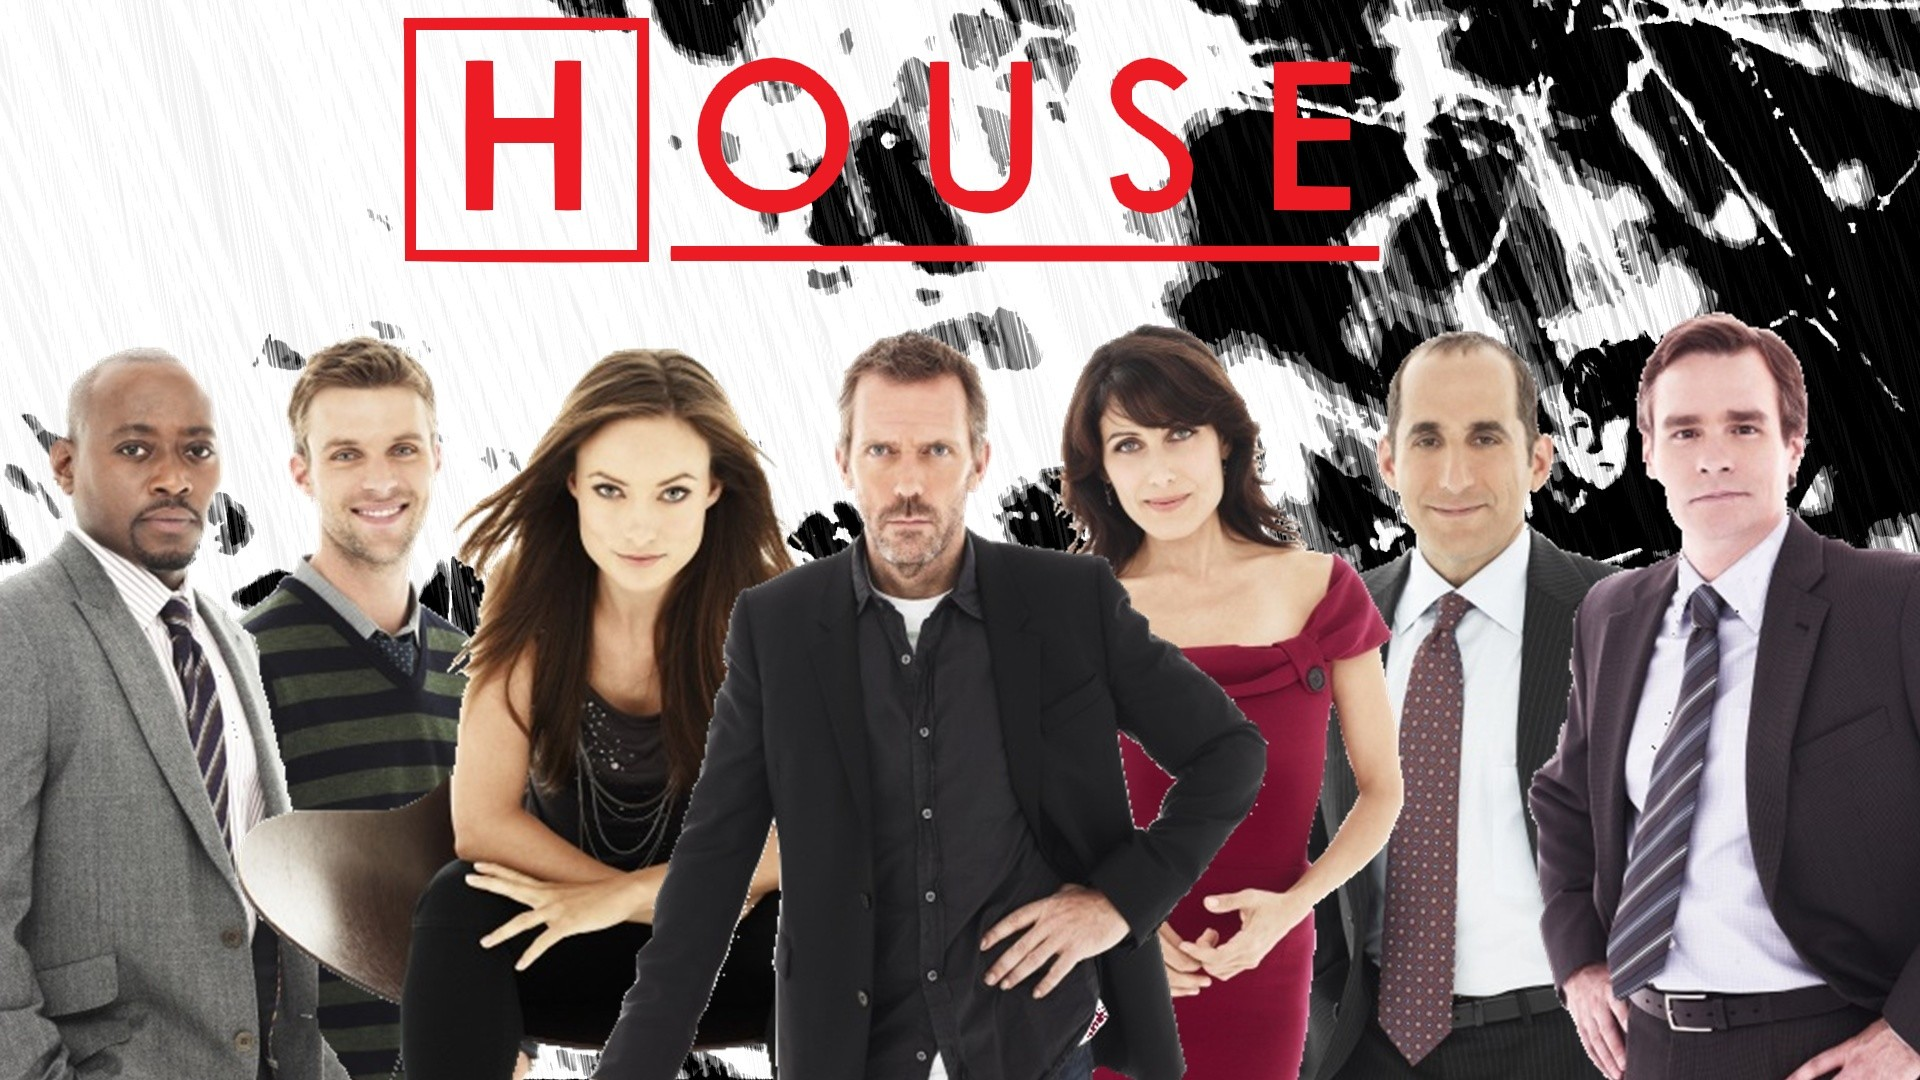 100 best Dr.House images on Pinterest | Gregory house, Hugh laurie and House  md